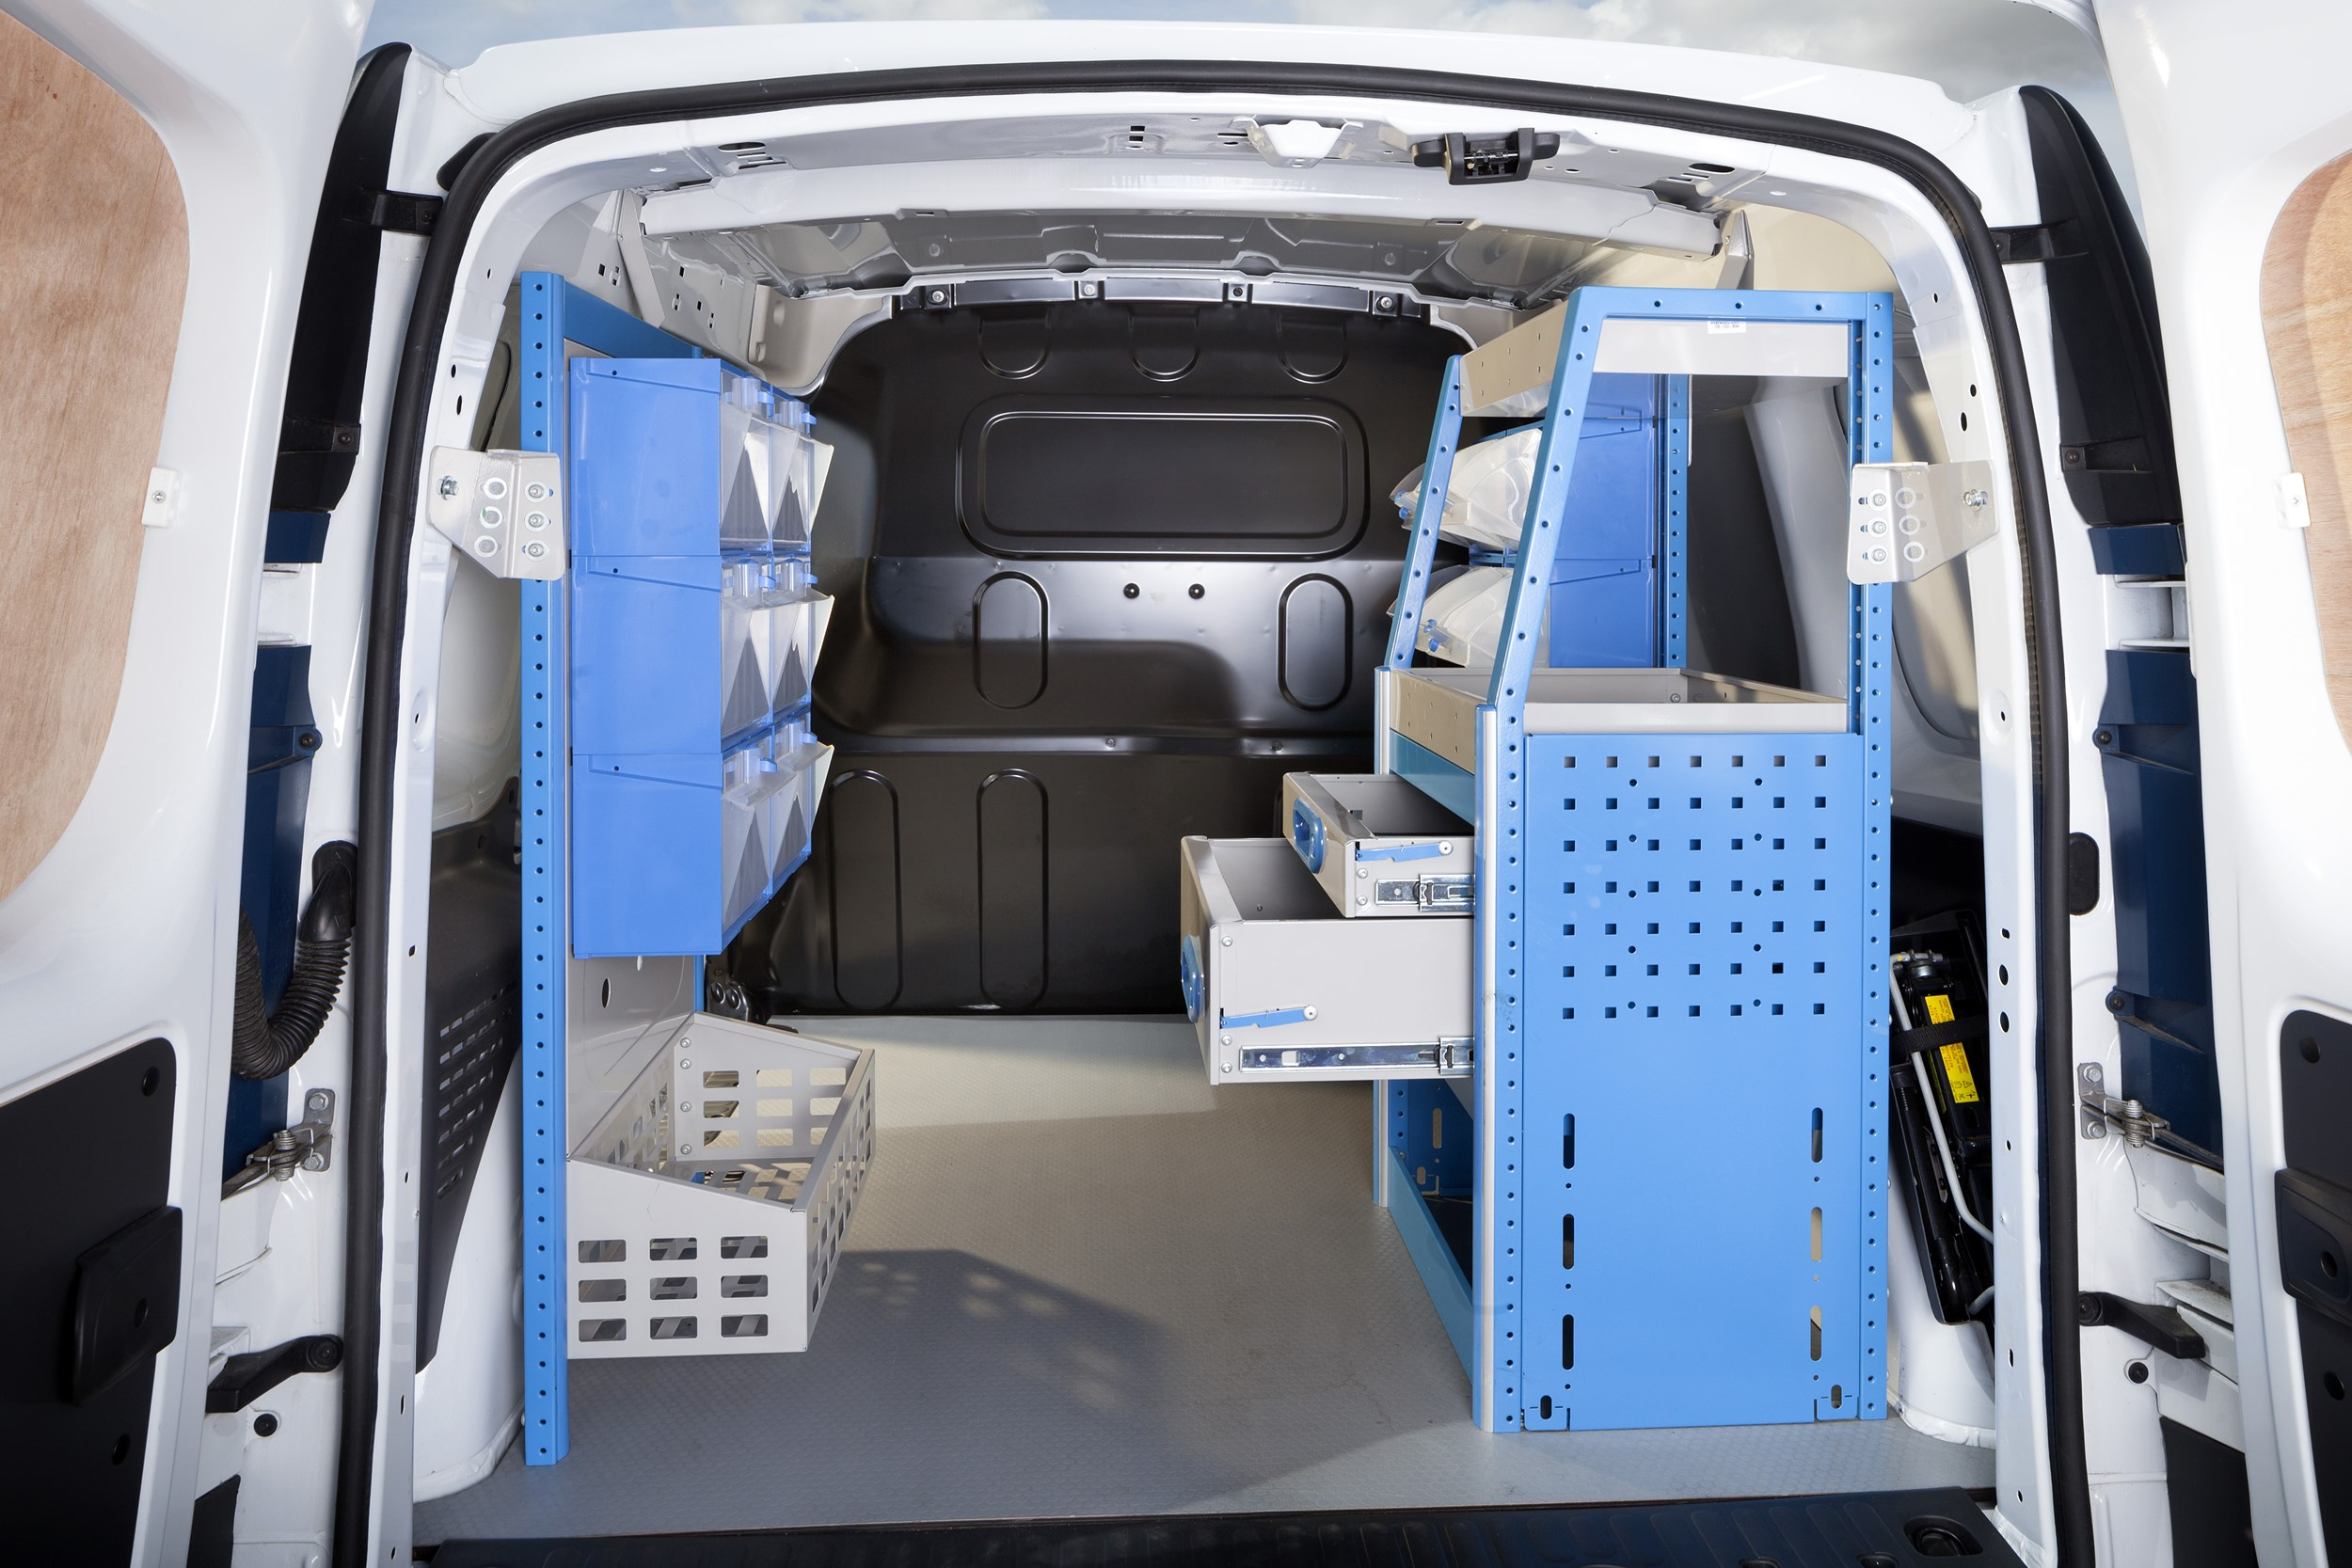 72cc48f3c3 Renault Kangoo now available with pre-installed Ready4Work racking ...